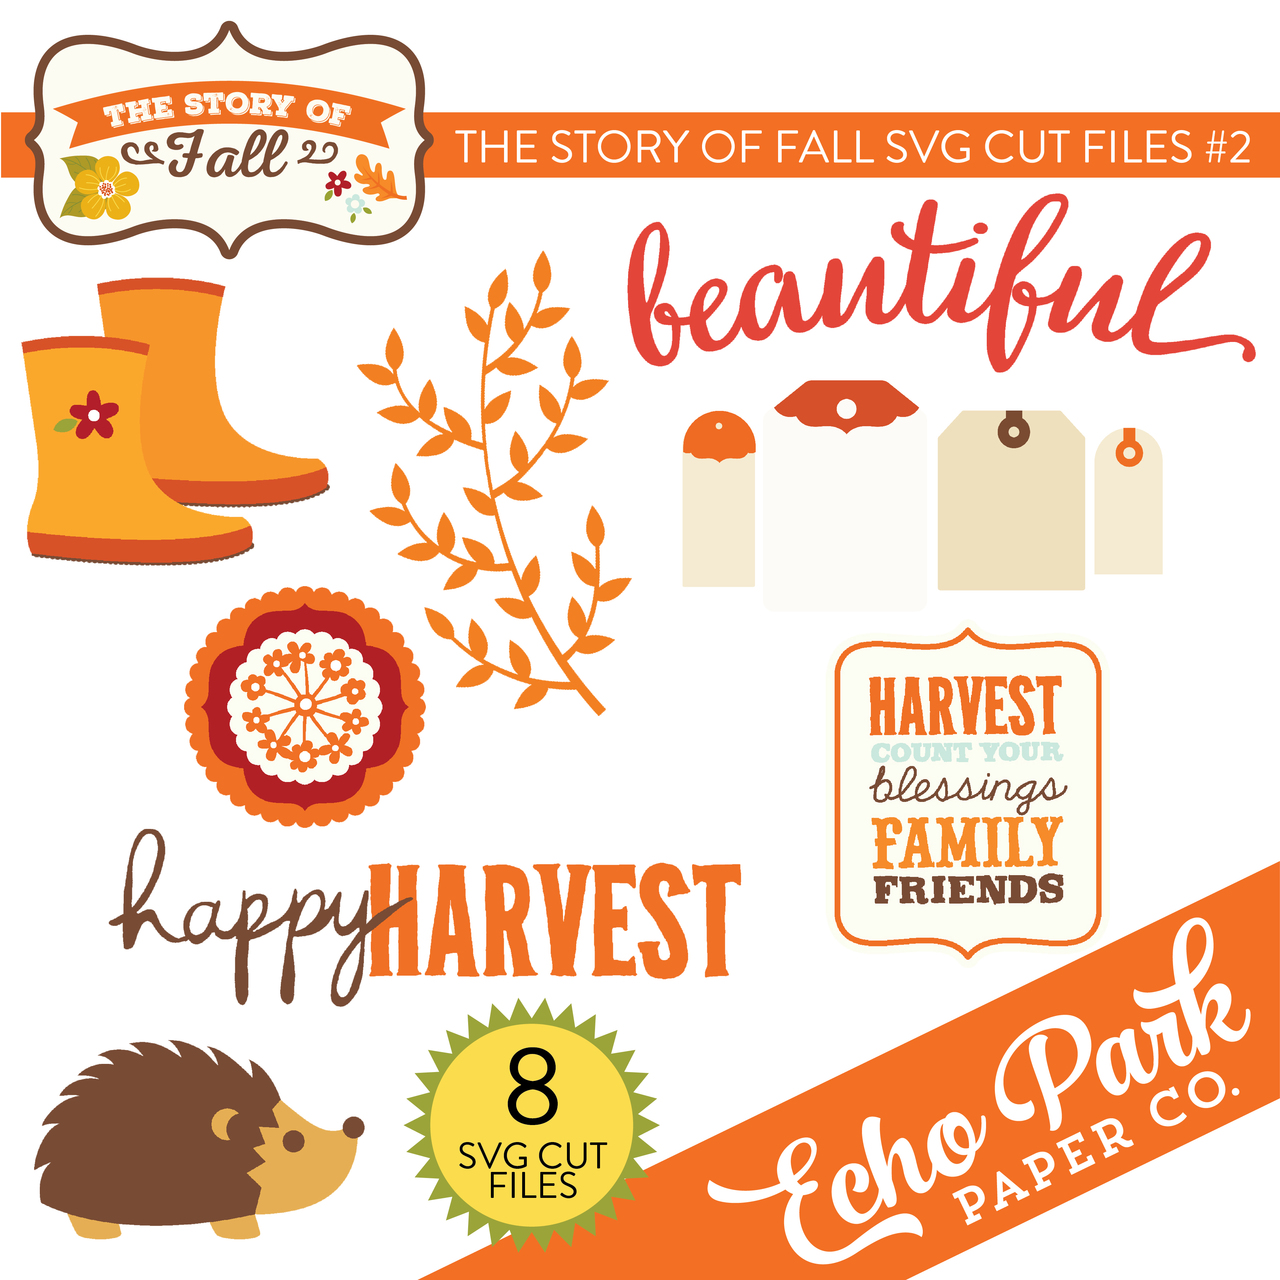 The Story of Fall SVG Cut Files #2